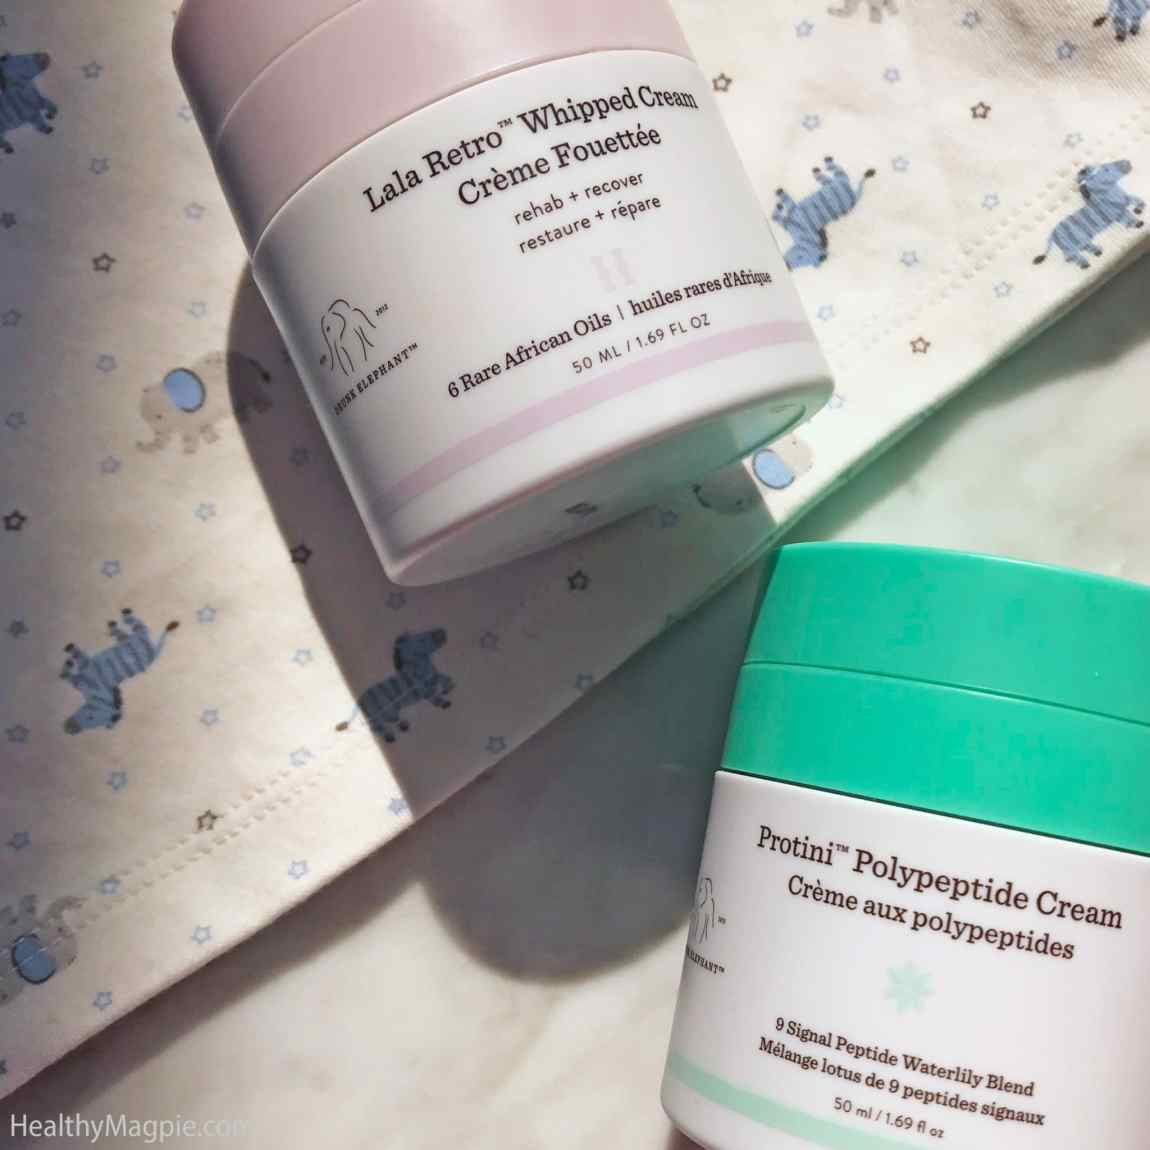 Review, pictures and comparison of Drunk Elephant clean skin care Protini Polypeptide Cream vs LaLa Retro Whipped Cream. I'm always interested in how creams can help with my melasma and hyperpigmentation.